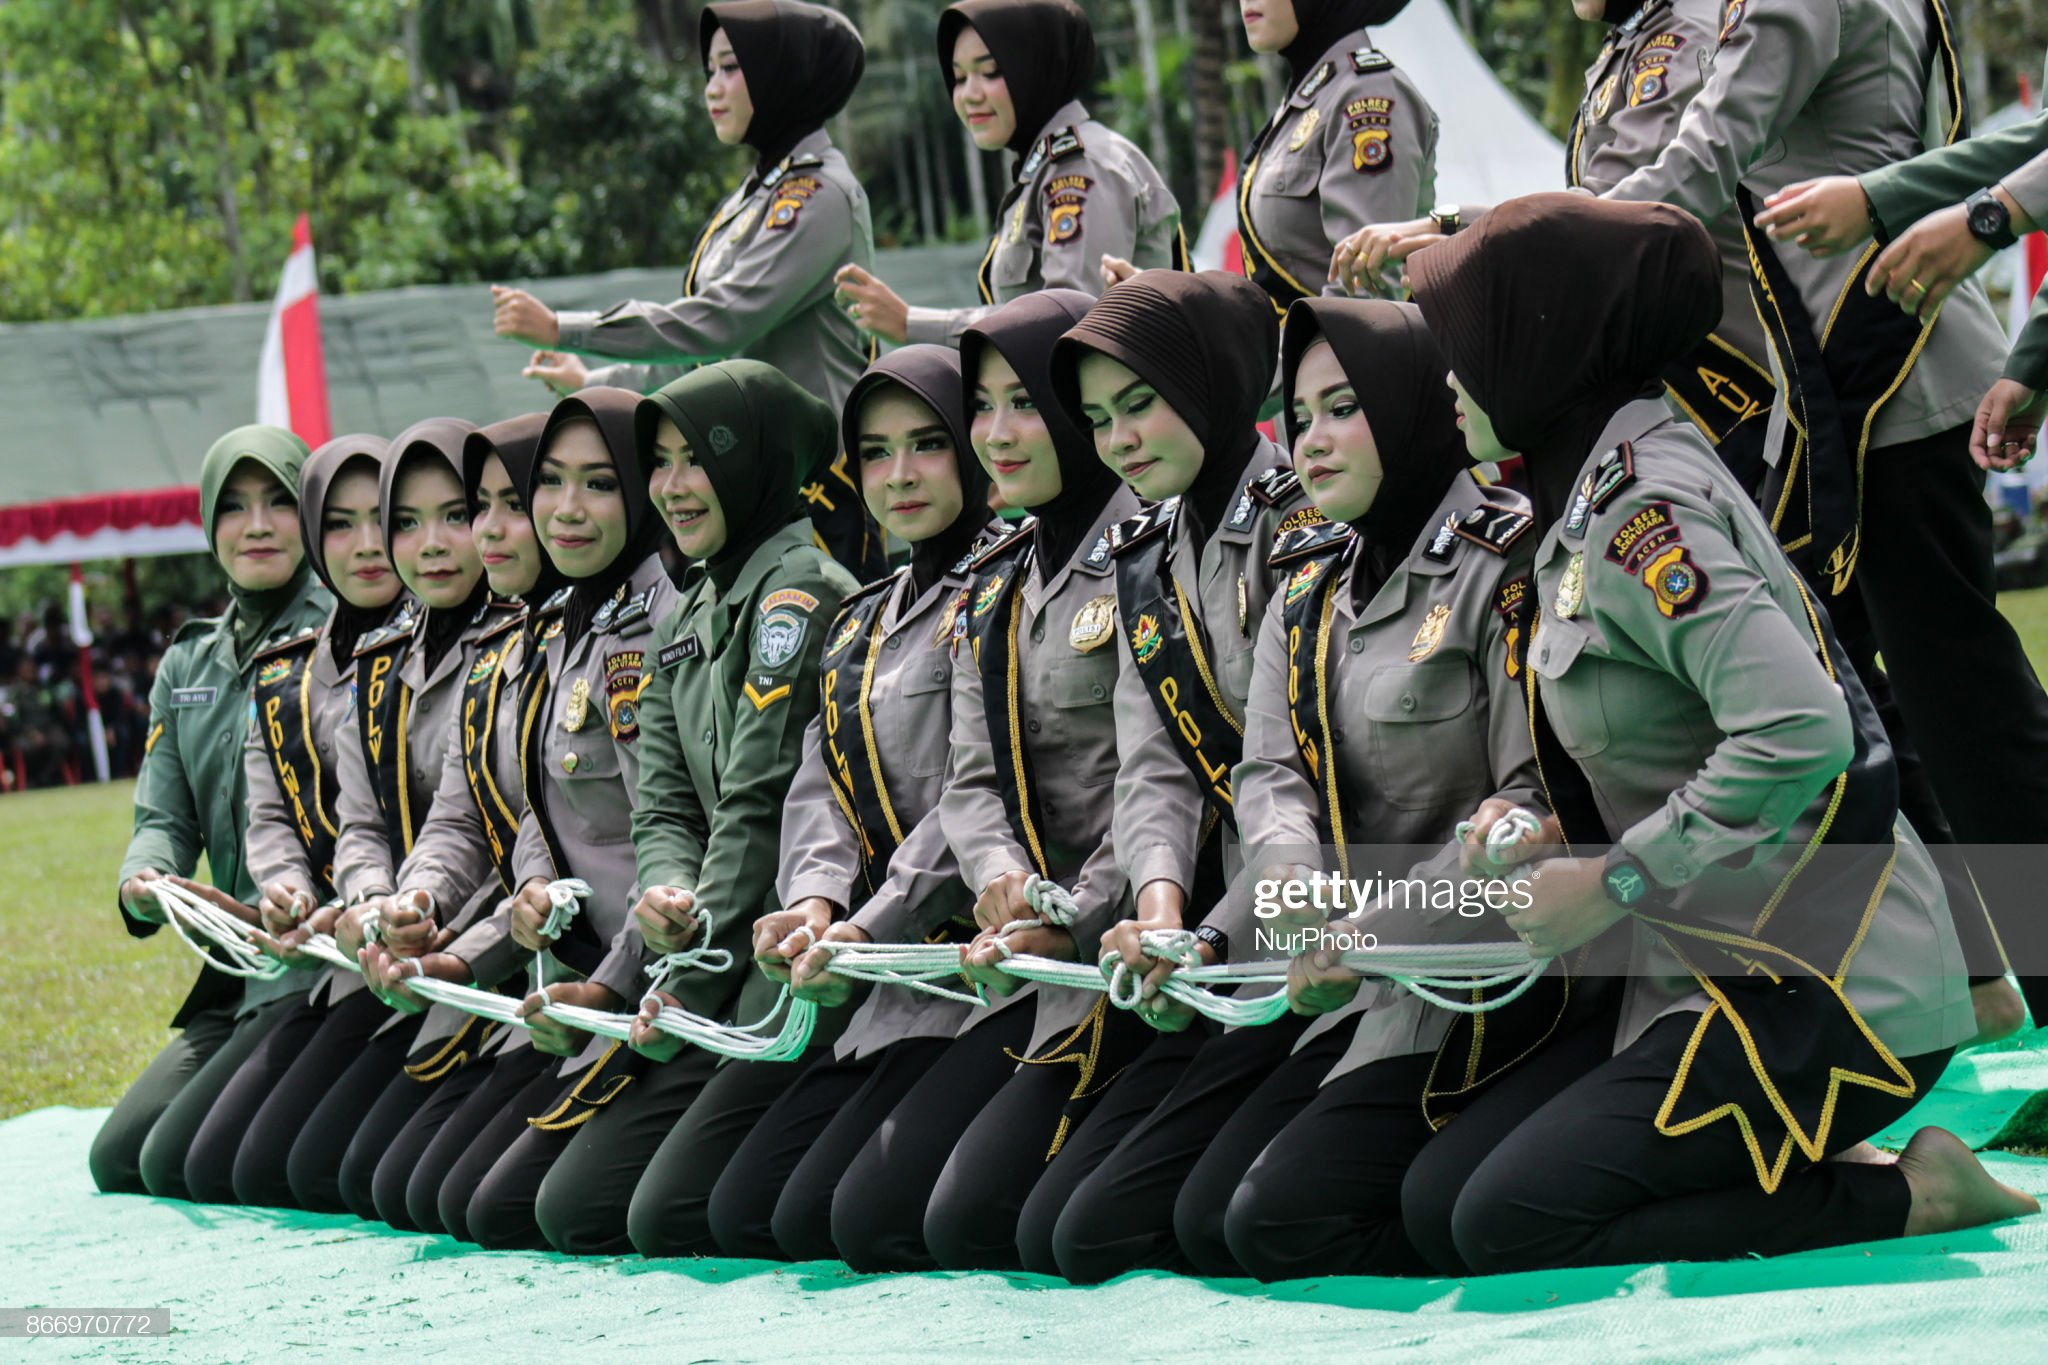 https://media.gettyimages.com/photos/indonesian-womens-police-officers-and-womens-soldiers-took-part-on-a-picture-id866970772?s=2048x2048